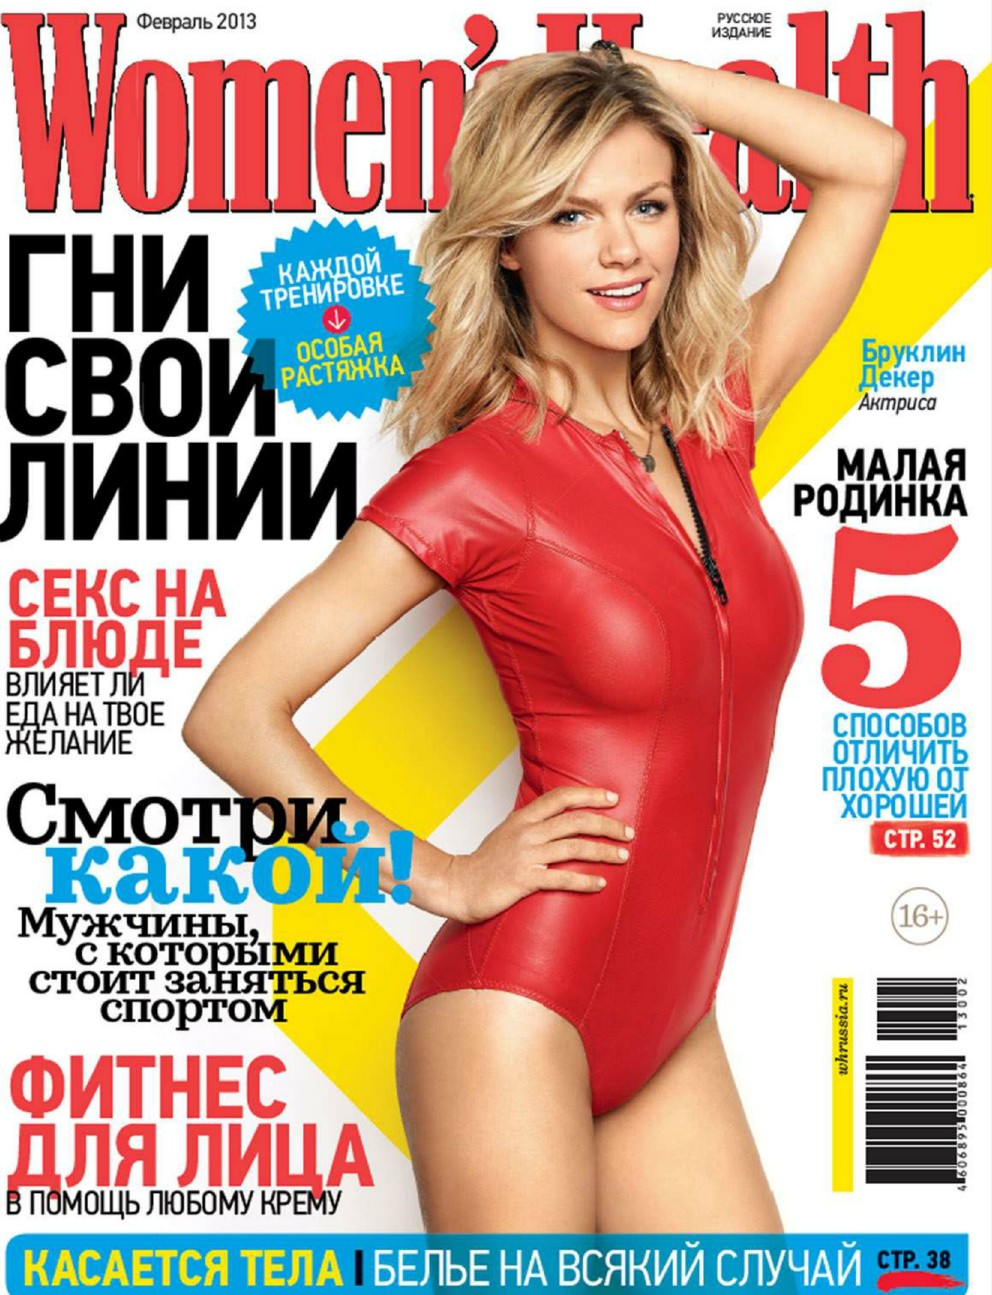 Decker women s health cover russia february 2013